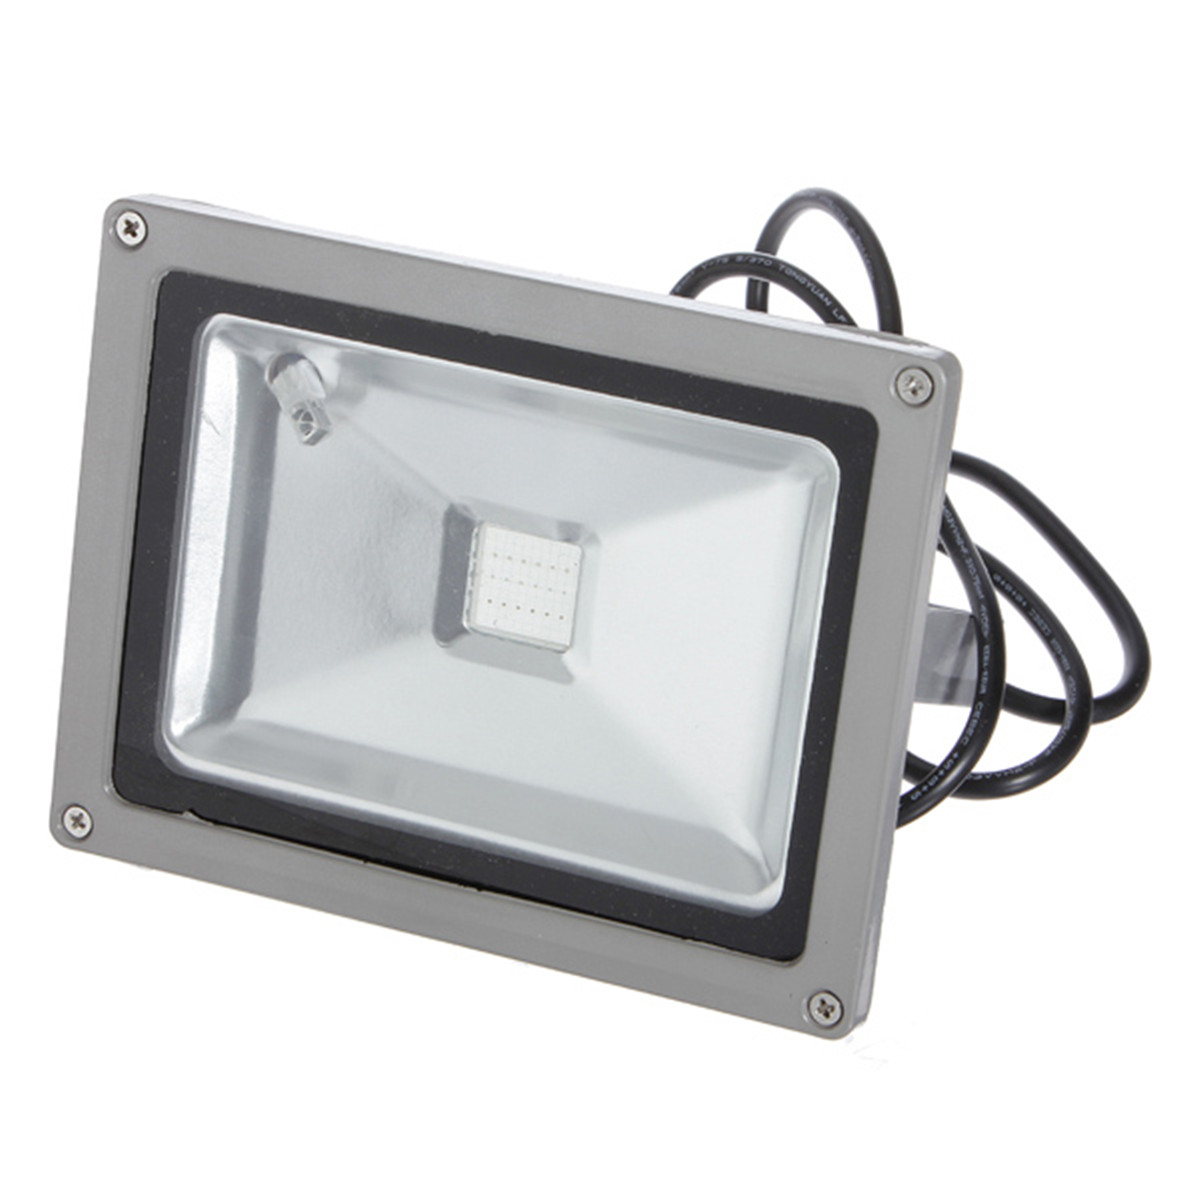 20w led lampe projecteur rgb exterieur lumiere ip65 for Projecteur a led exterieur